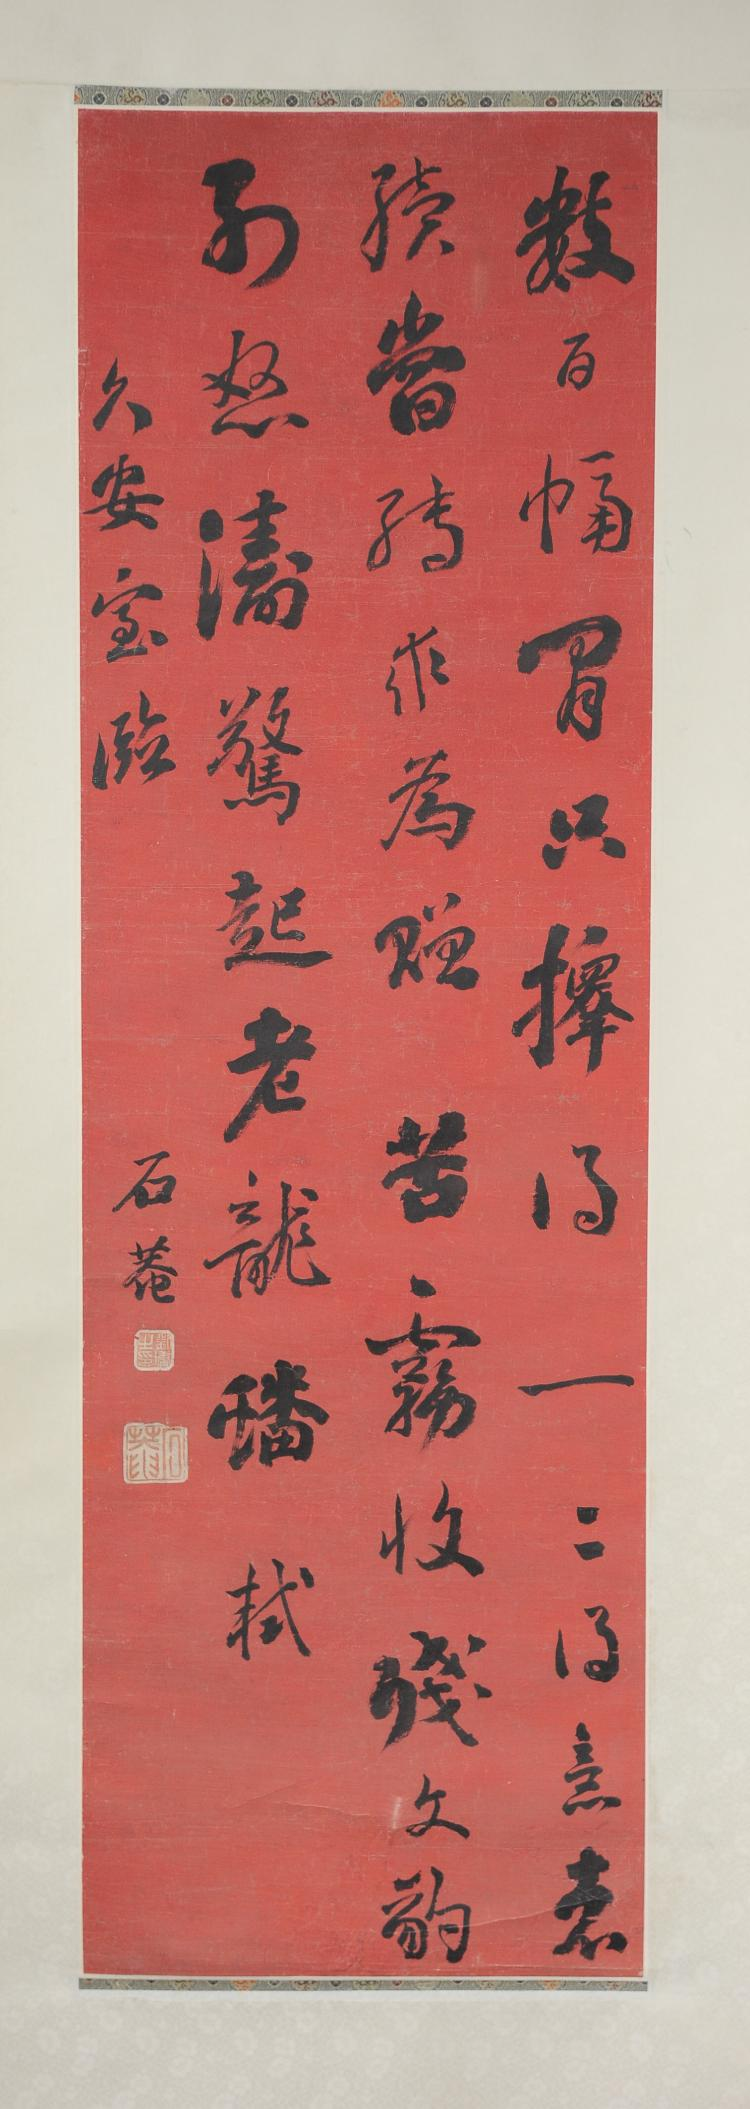 Calligraphy by Liu Yong (1719 - 1805)